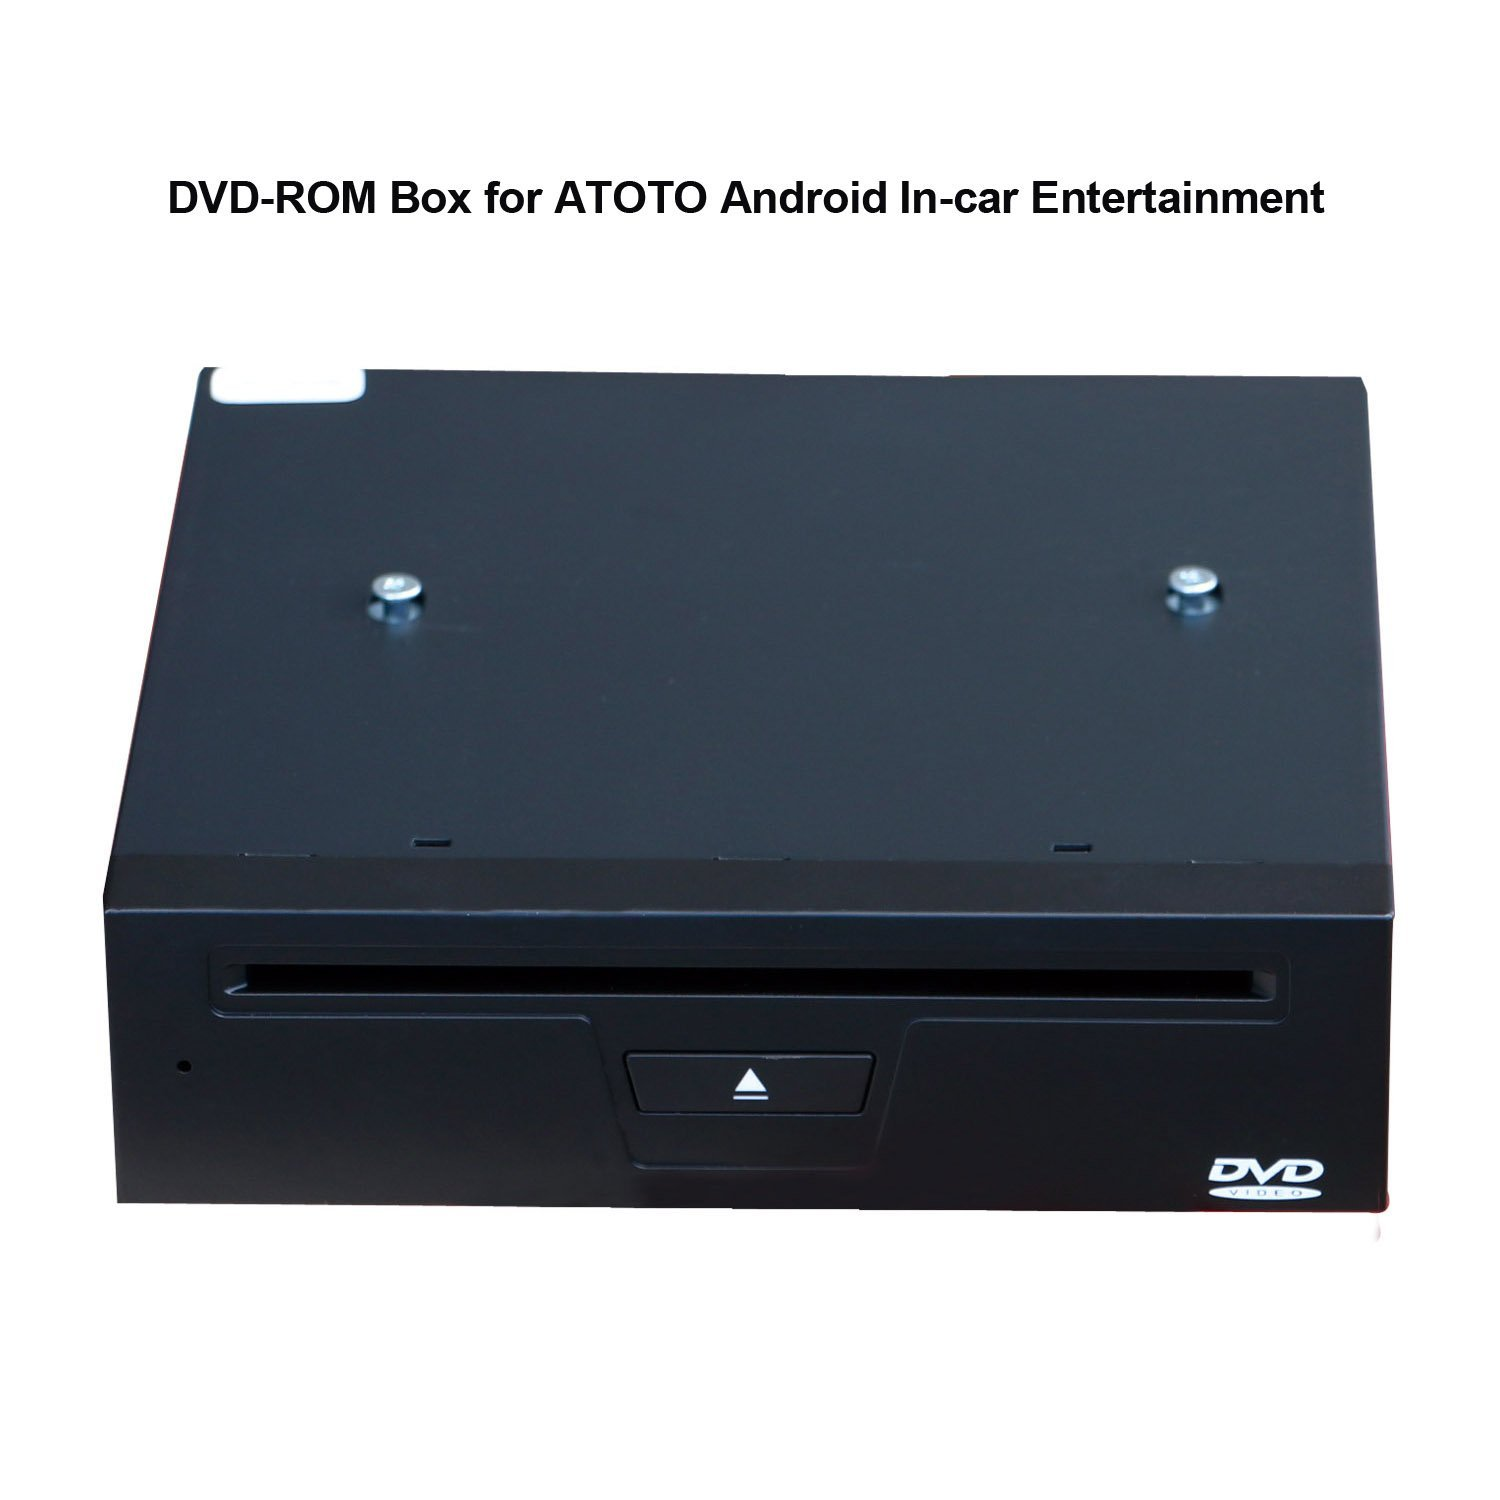 Buy ATOTO DVD/CD/Disc ROM BOX - Works with ATOTO M4 Series Android